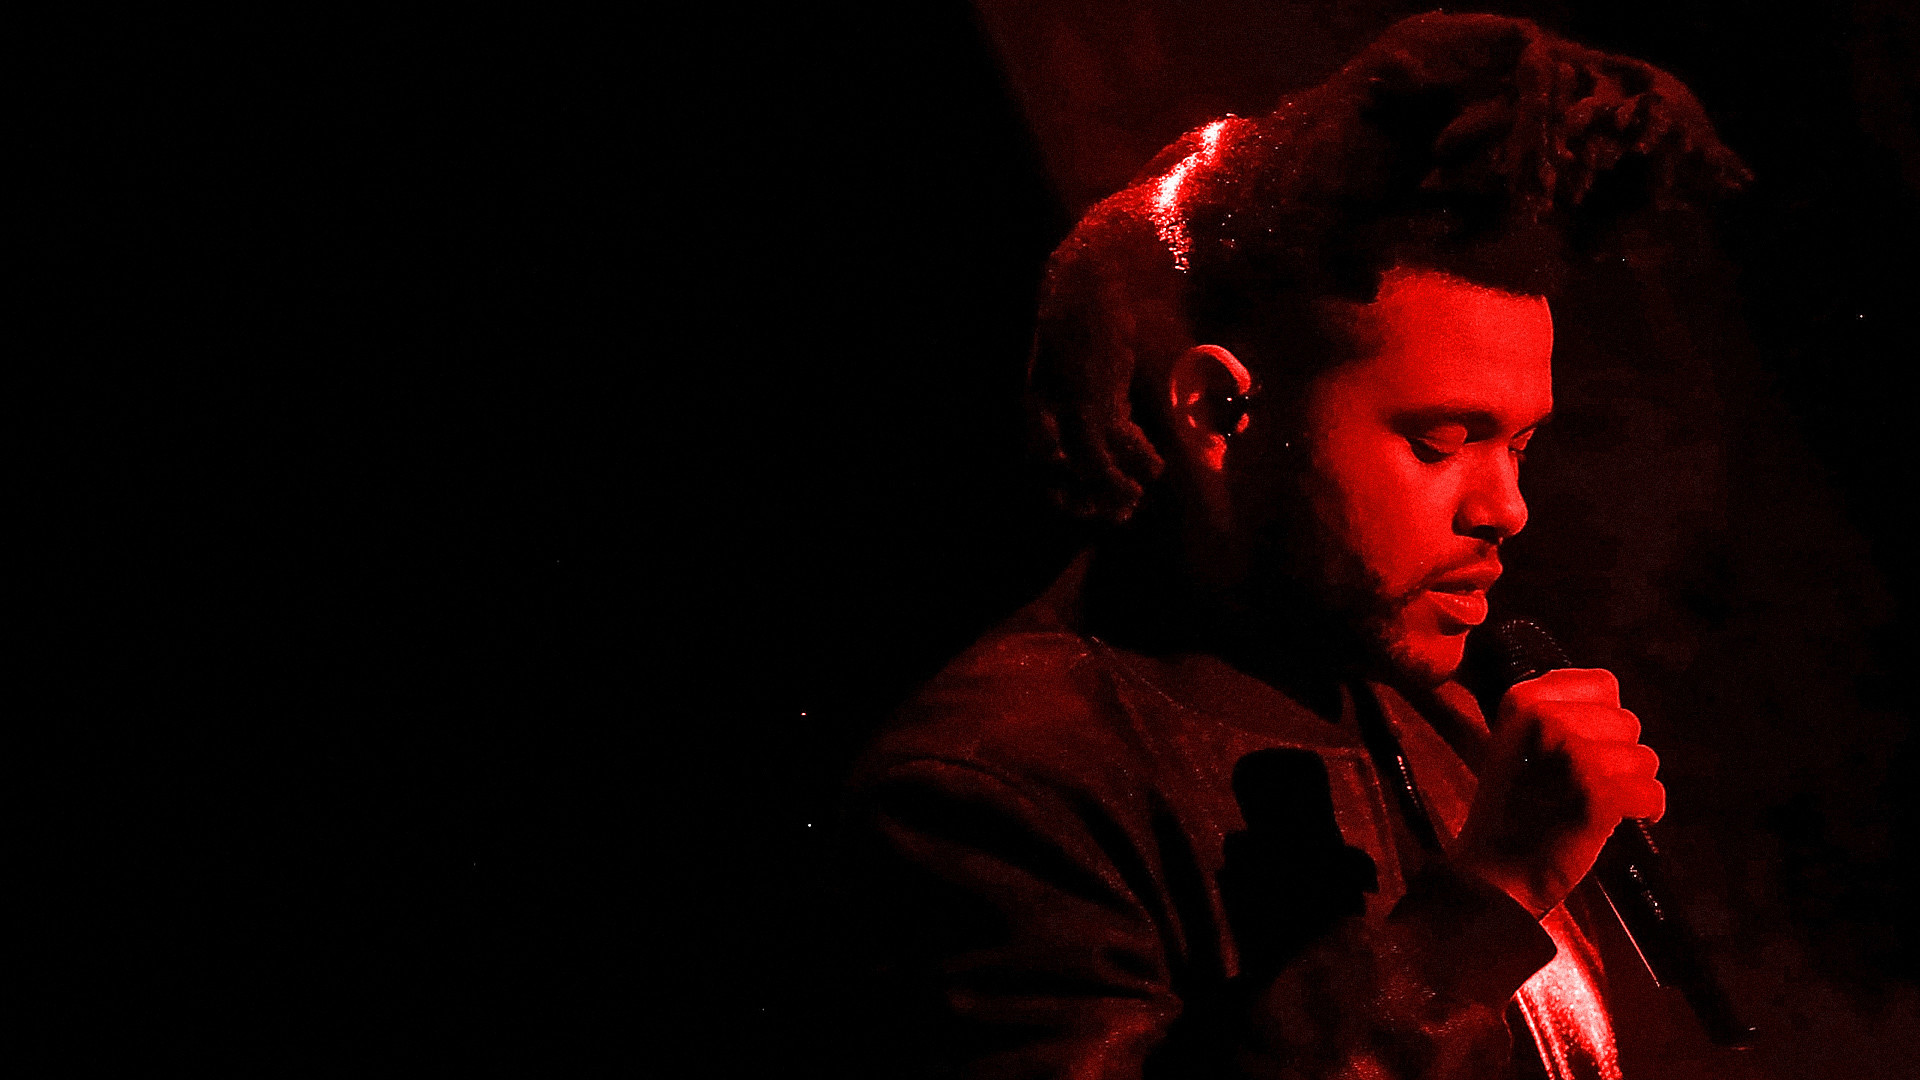 1920x1080 Trilogy The Weeknd wallpaper 1024×769 The Weeknd Wallpapers (39 Wallpapers)  | Adorable